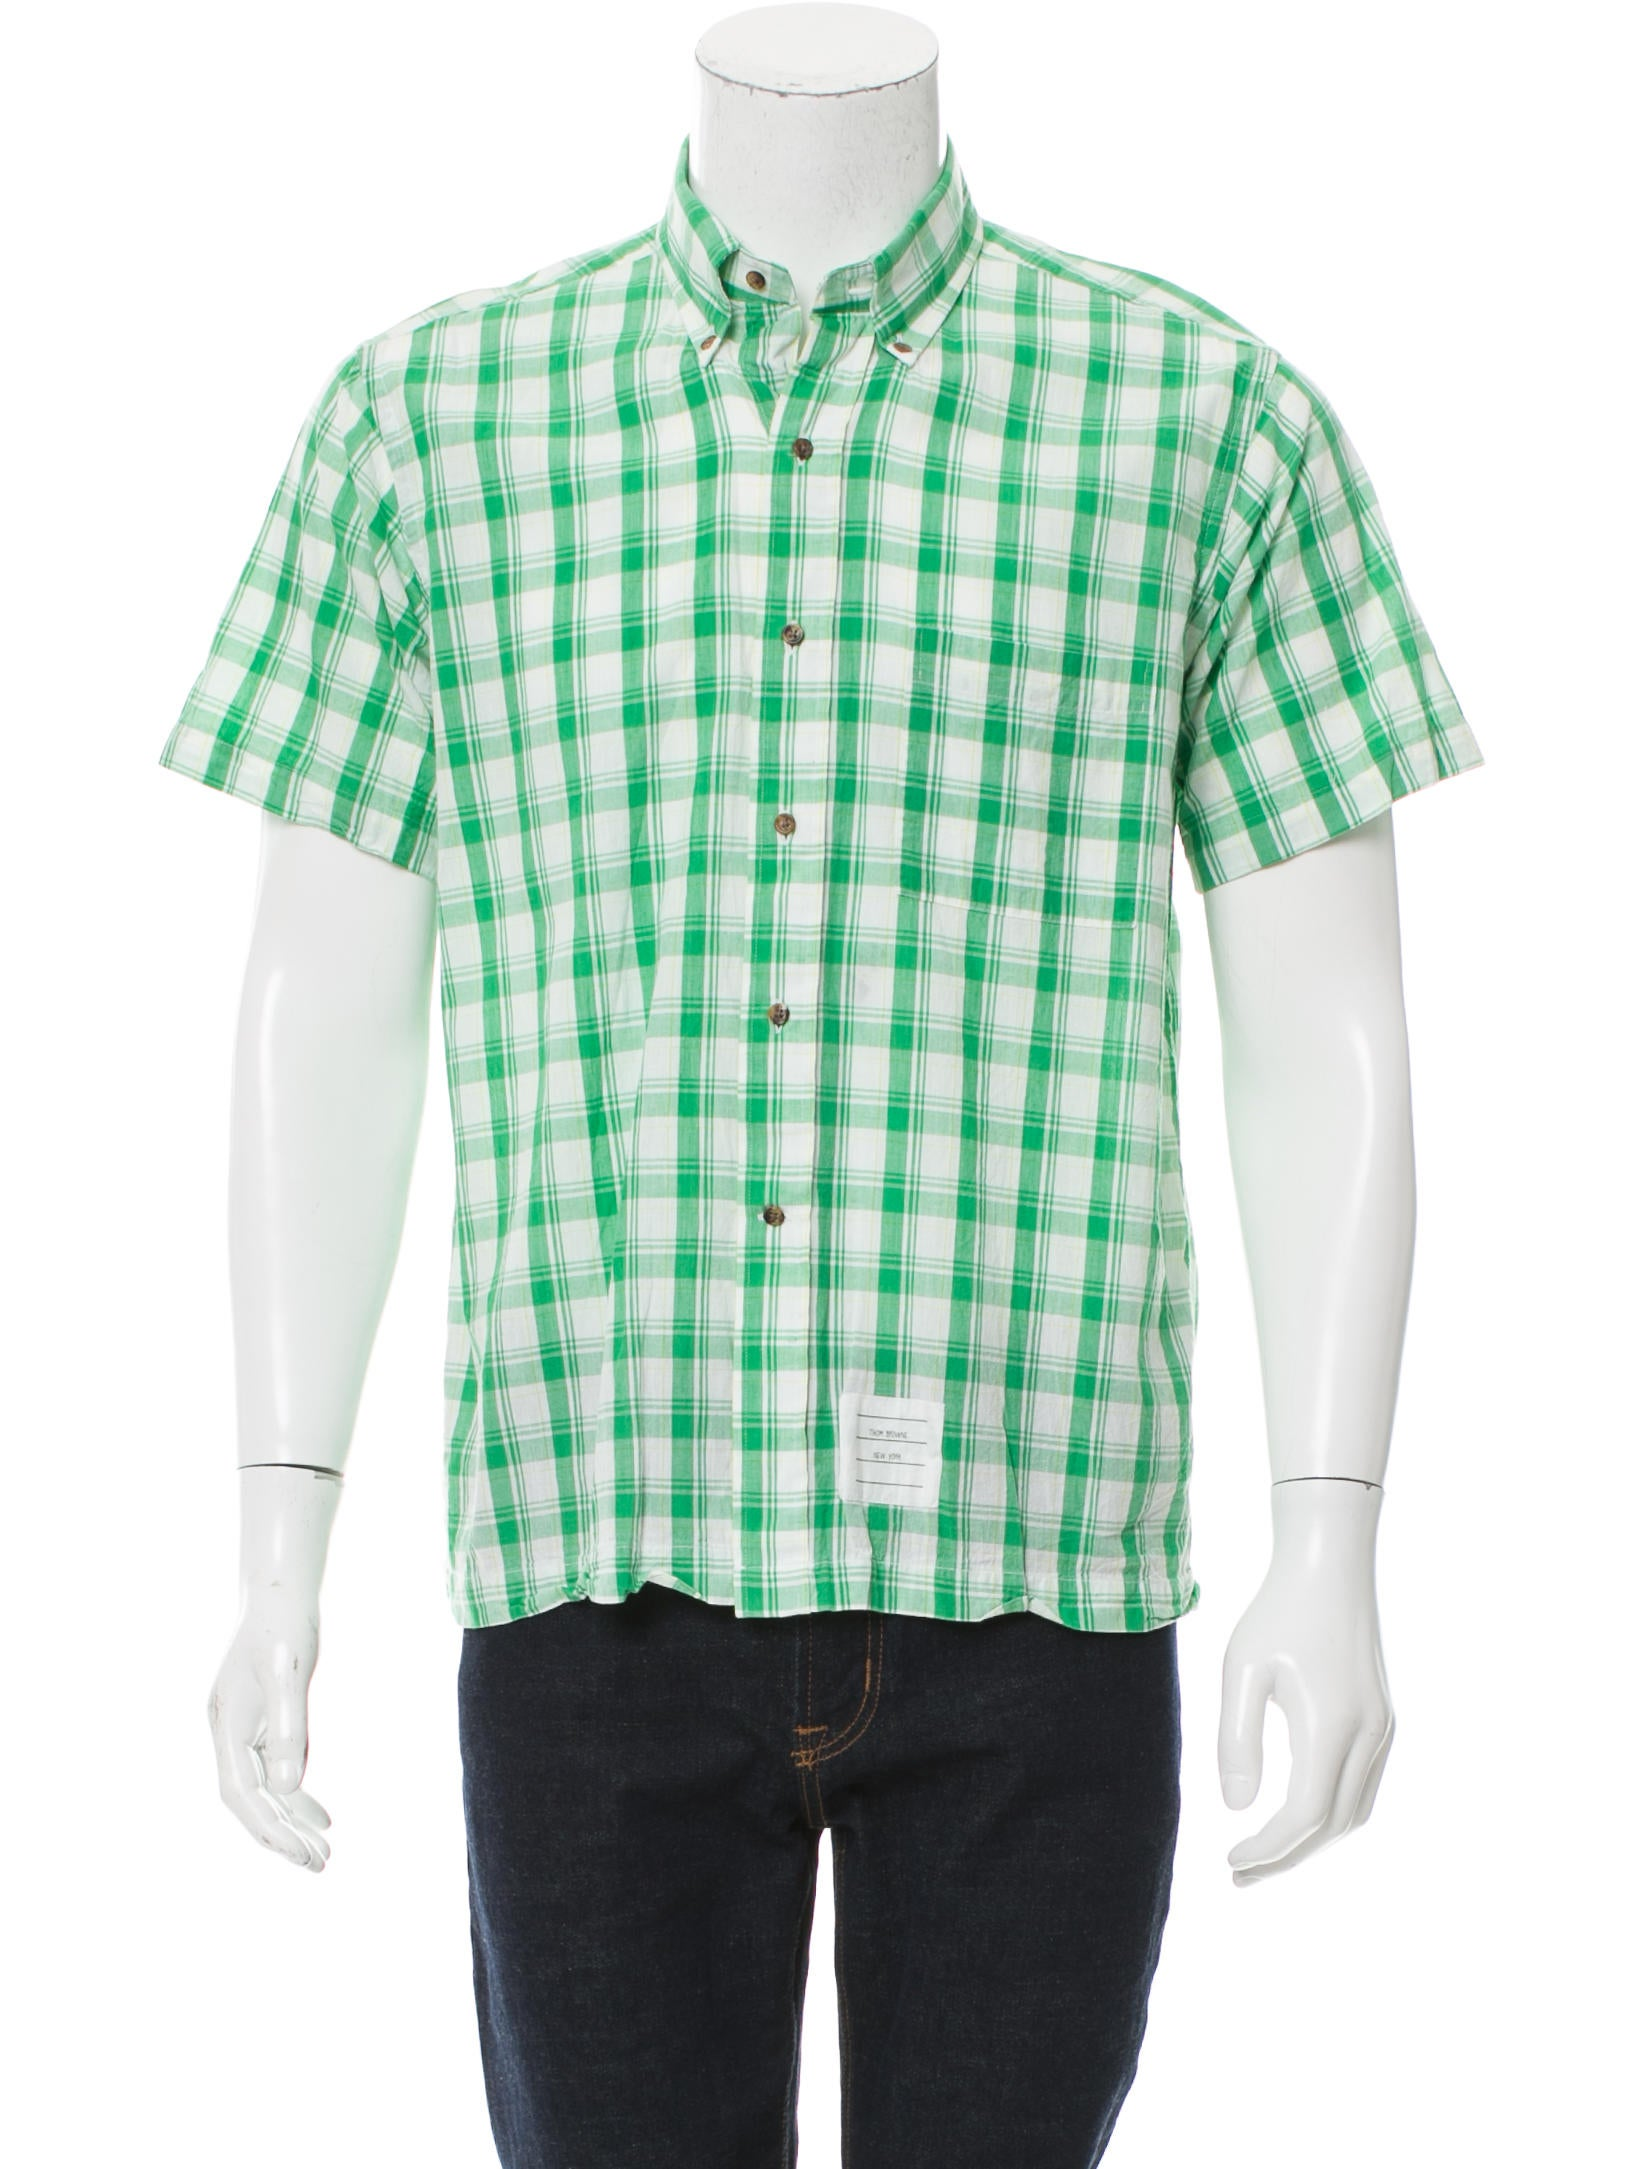 Dickies Big & Tall Men?s Short-Sleeve Plaid Shirt? Relaxed Fit. Sold by Best Buys Big & Tall. $ $ Buffalo David Bitton Mens Short Sleeves Plaid Button-Down Shirt. Sold by BHFO. $ $ - $ Buffalo David Bitton Mens Plaid Short Sleeves Button-Down Shirt.